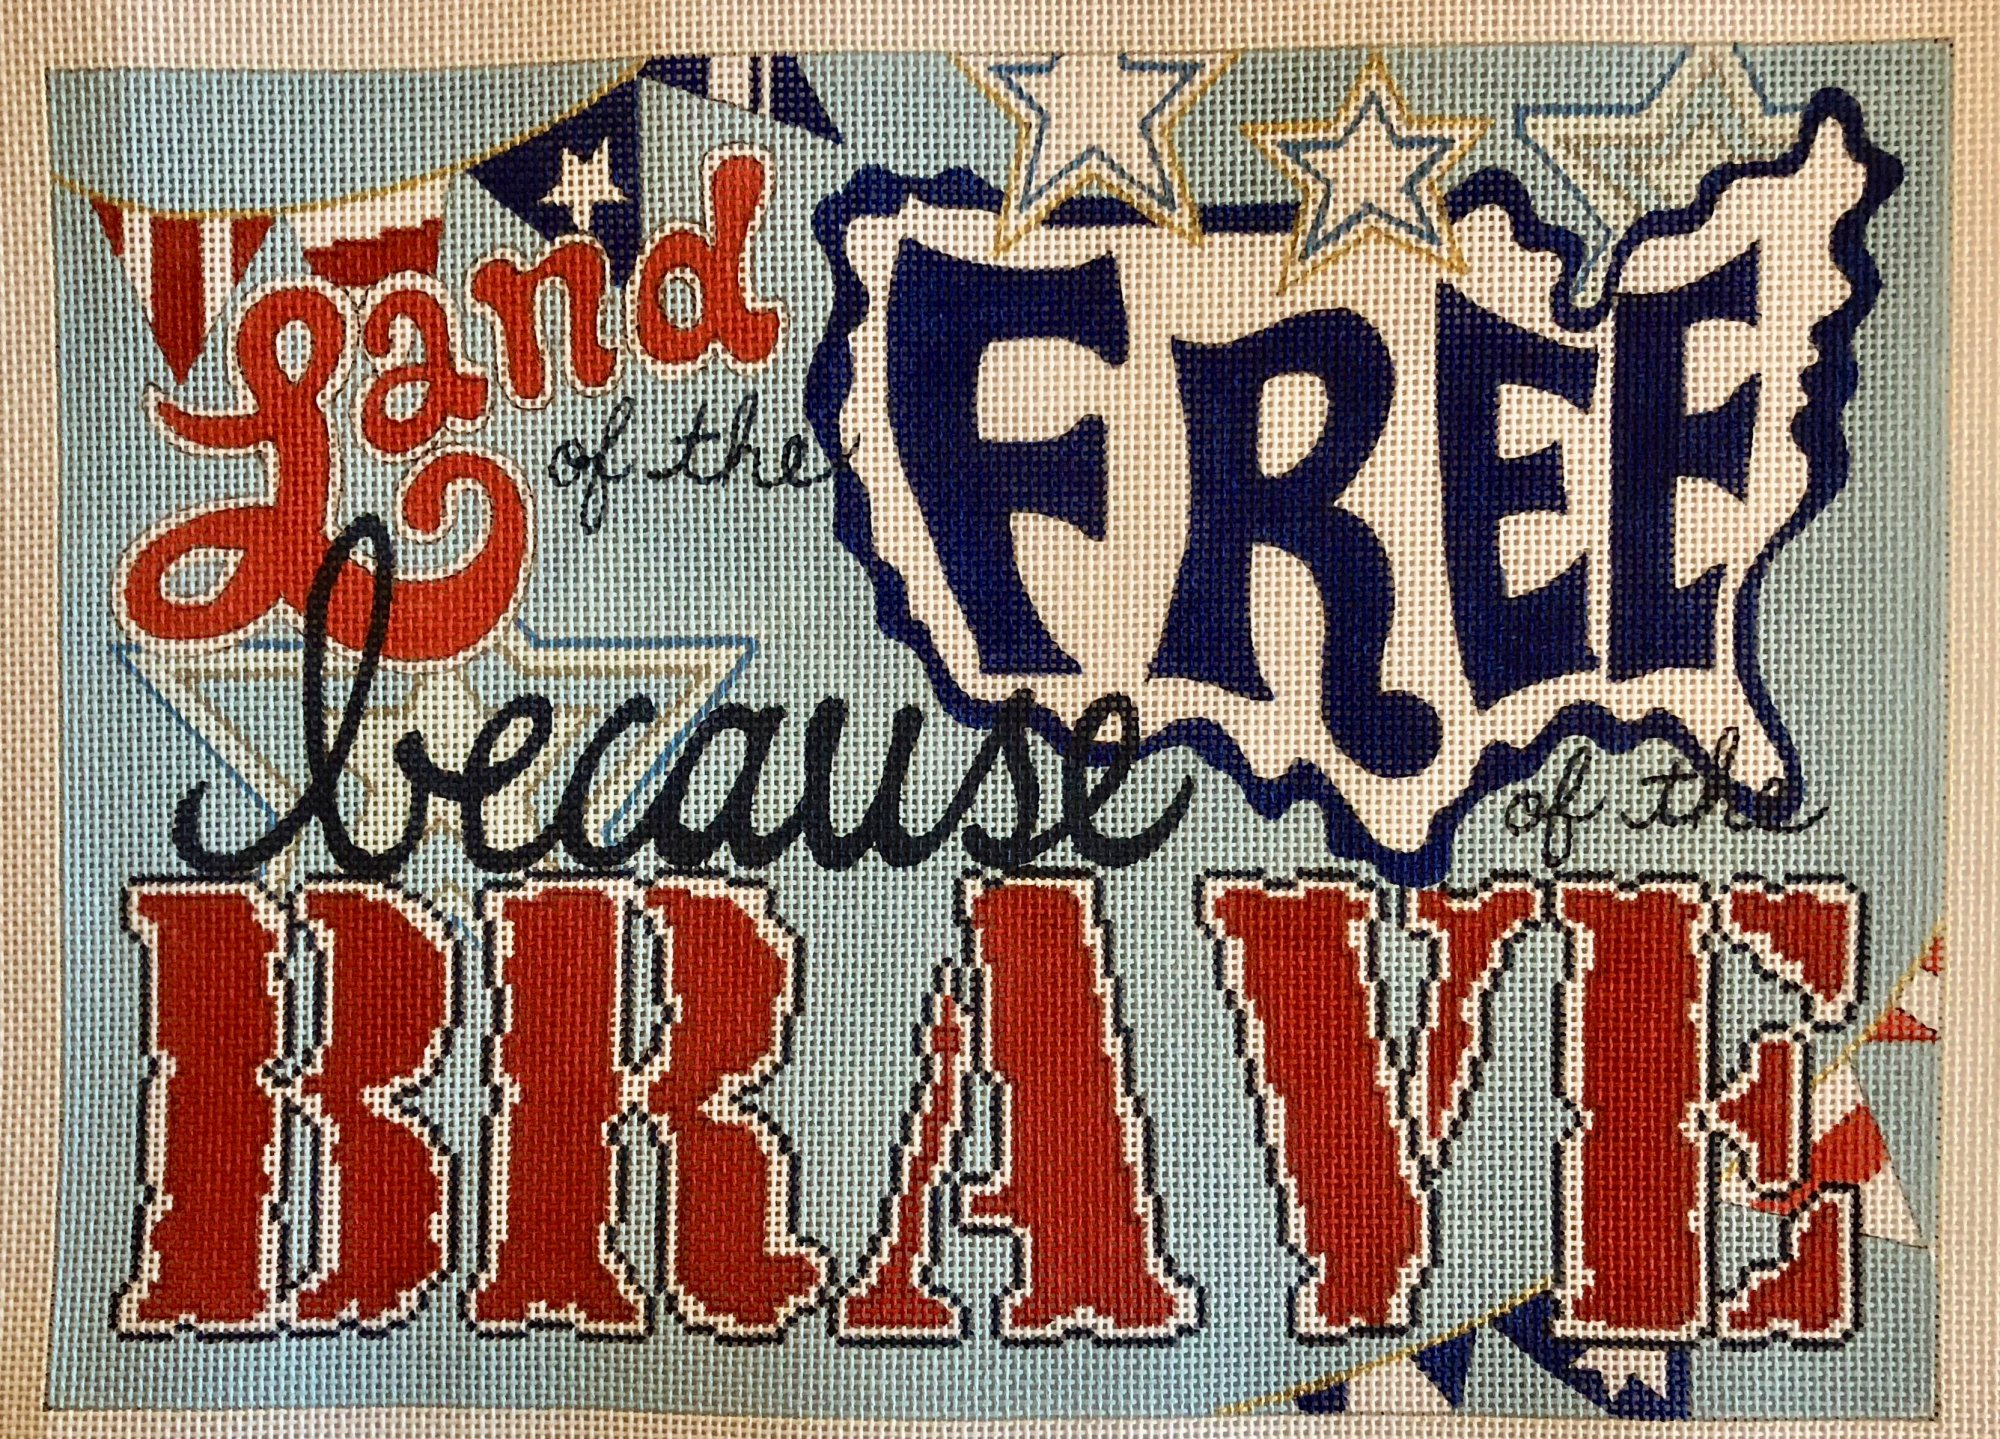 land of the free...brave